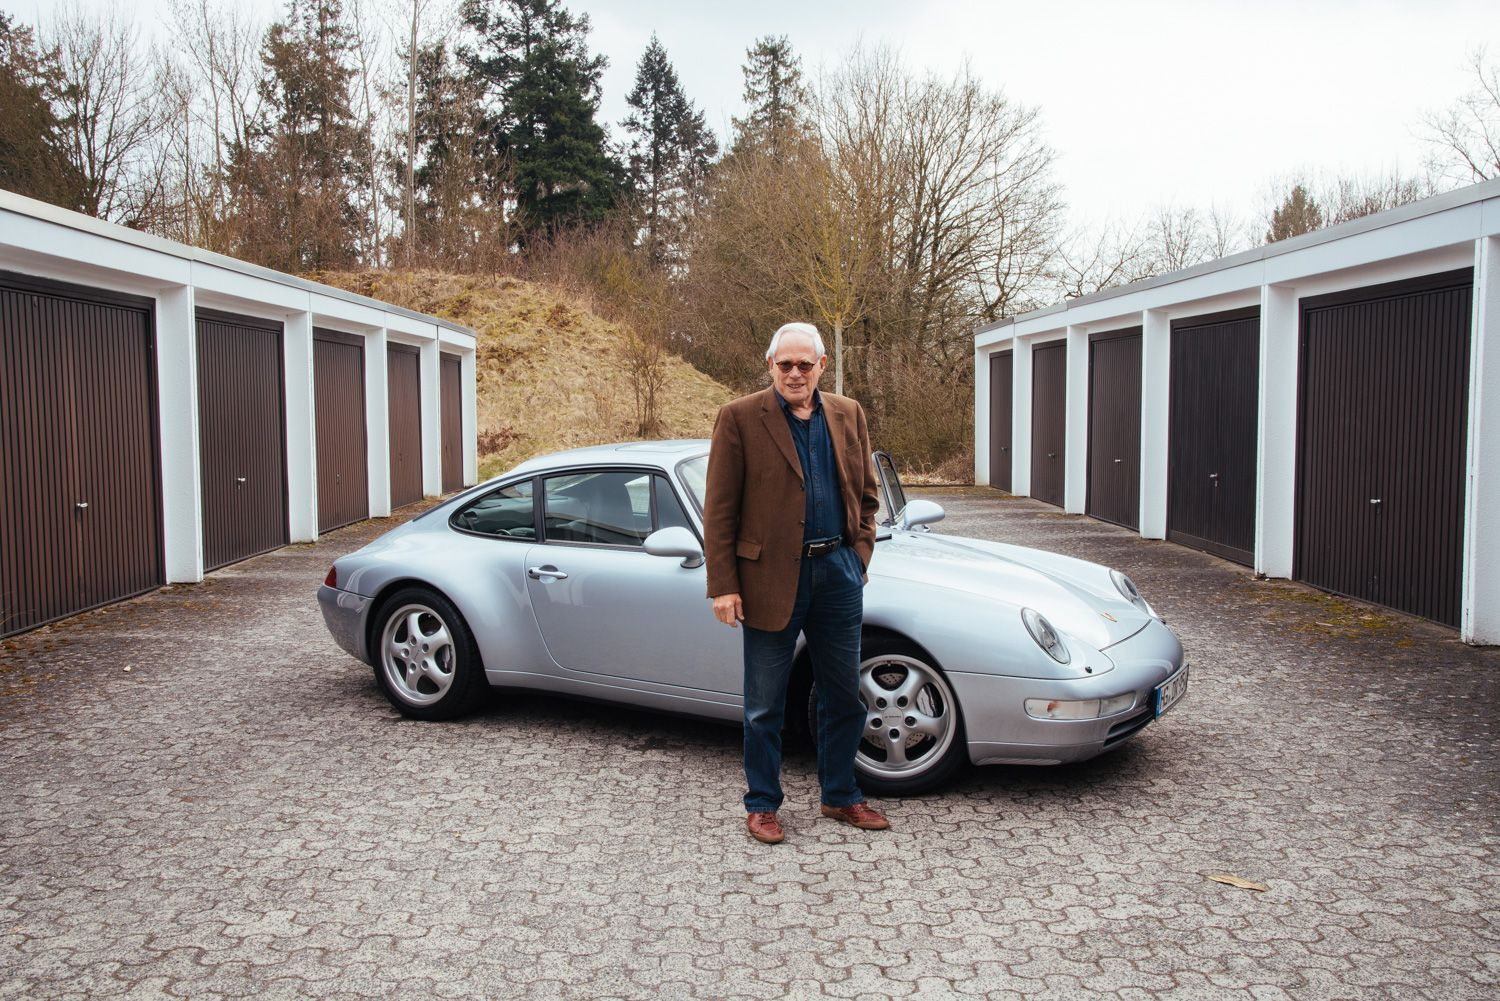 Dieter Rams and his silver Porsche 993, arguably the greatest sportscar ever.